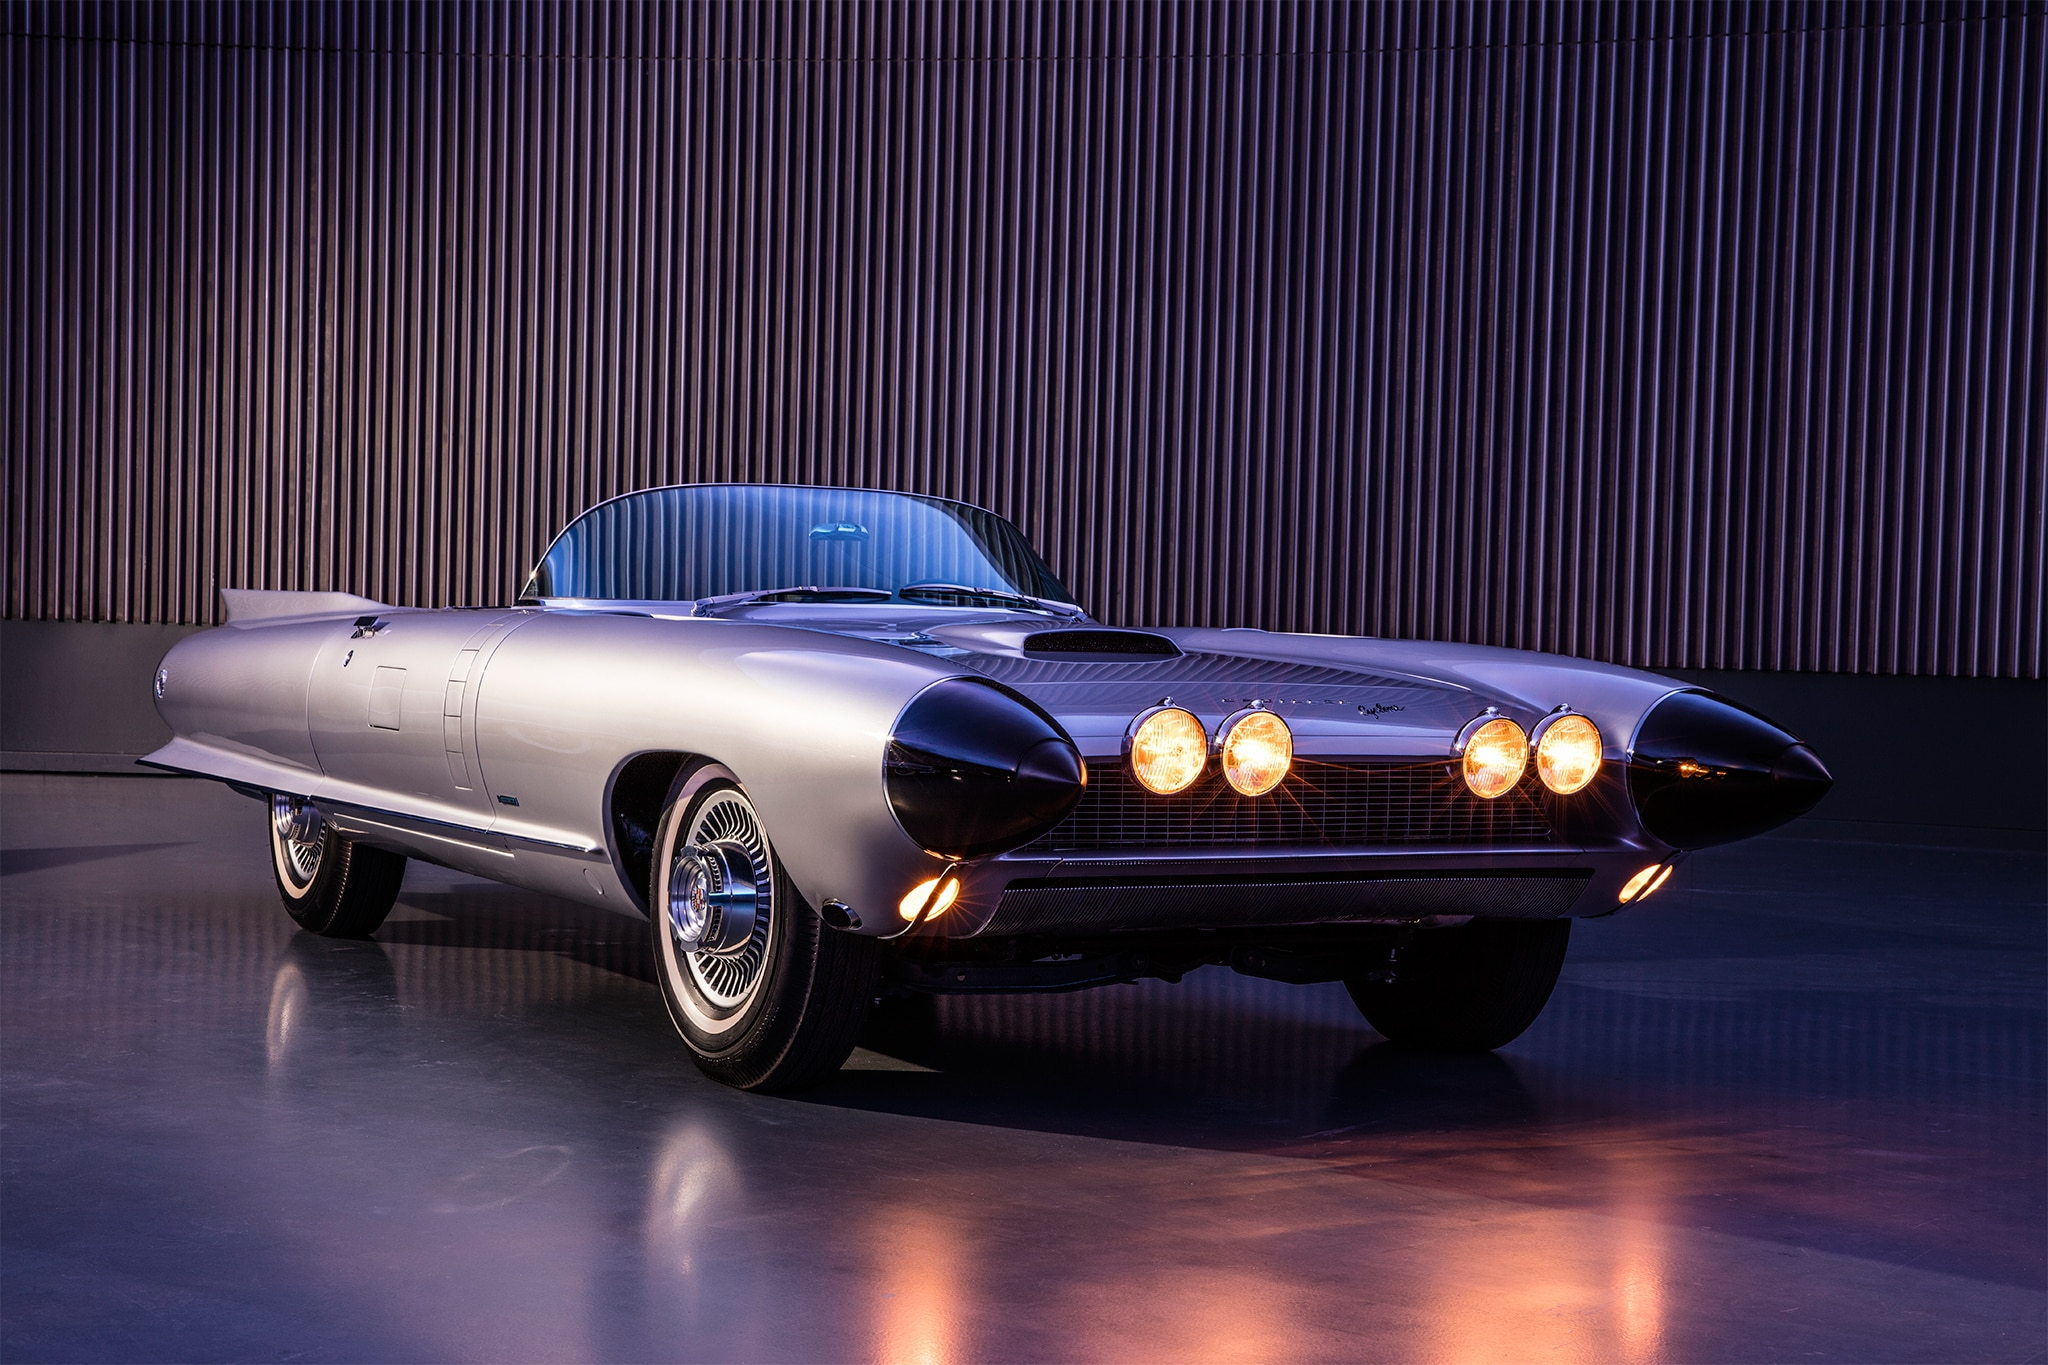 http://st.automobilemag.com/uploads/sites/11/2016/11/Cadillac-Cyclone-front-three-quarter-02.jpg